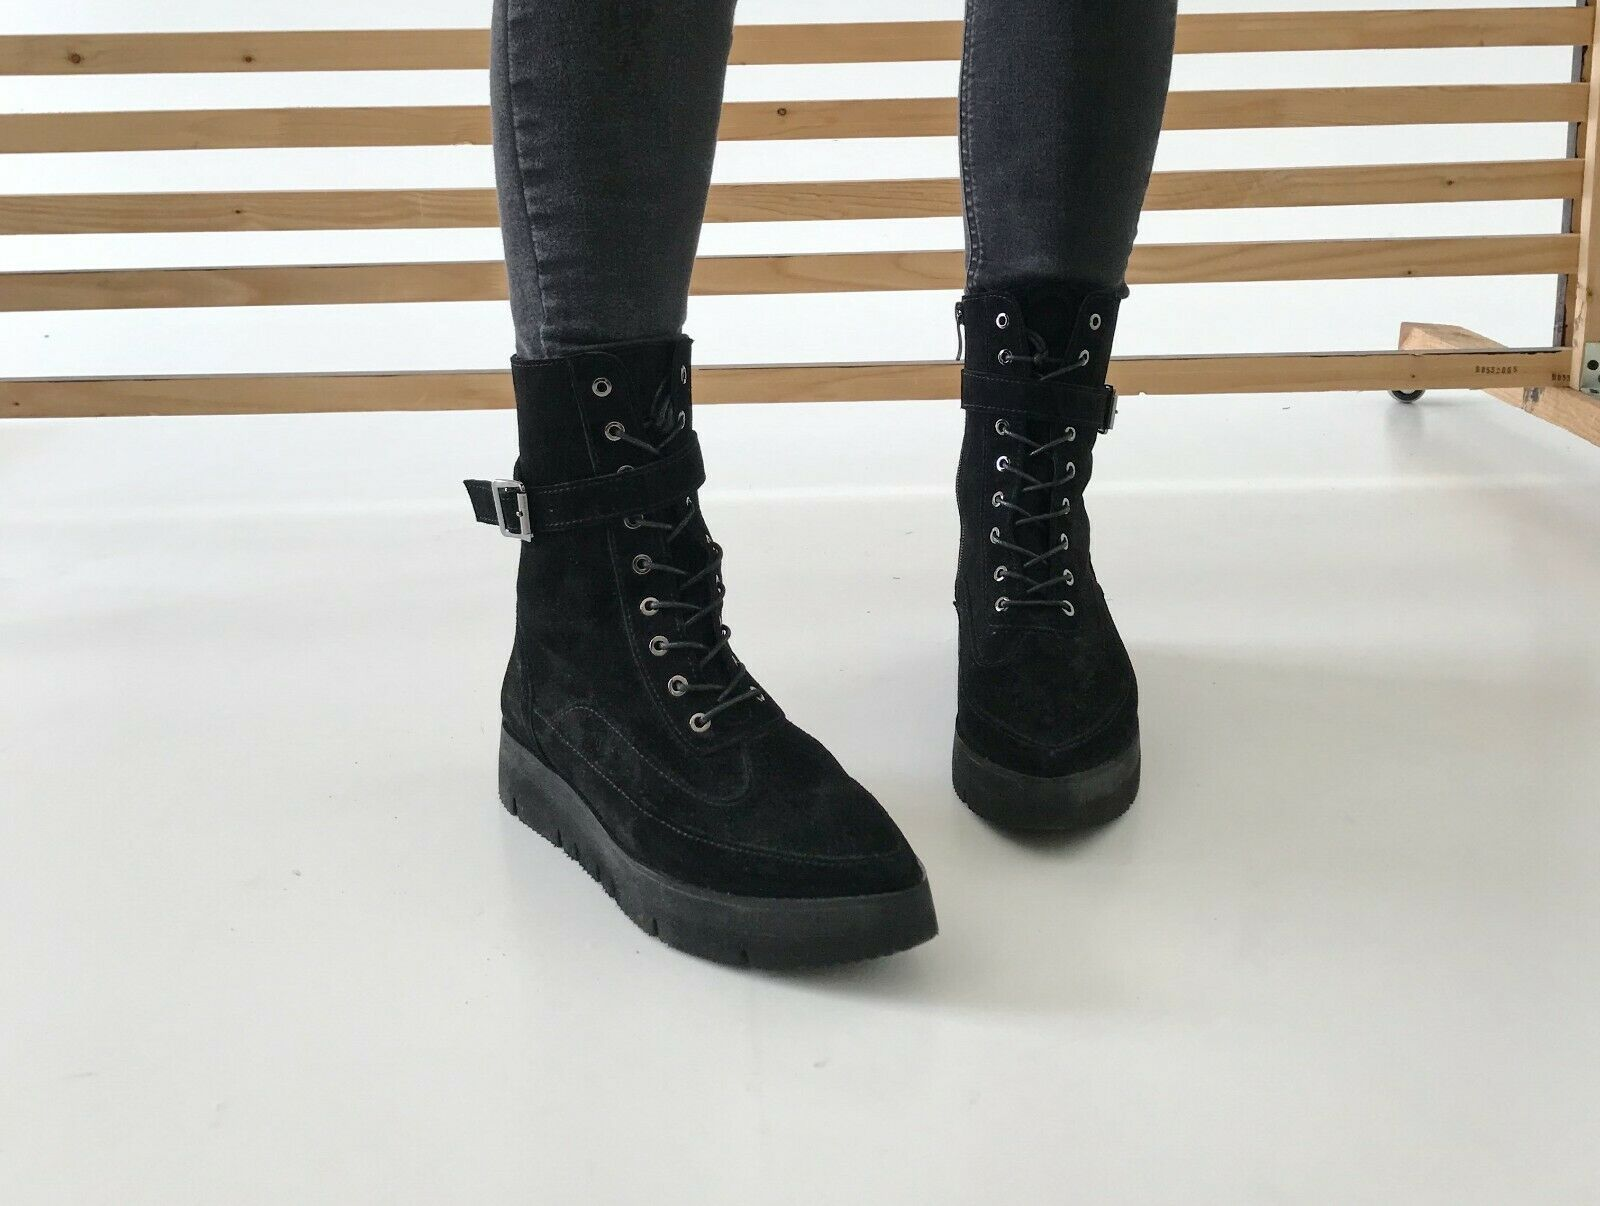 Black suede pointed toe combat boots for womens size 8-8.5 Handmade